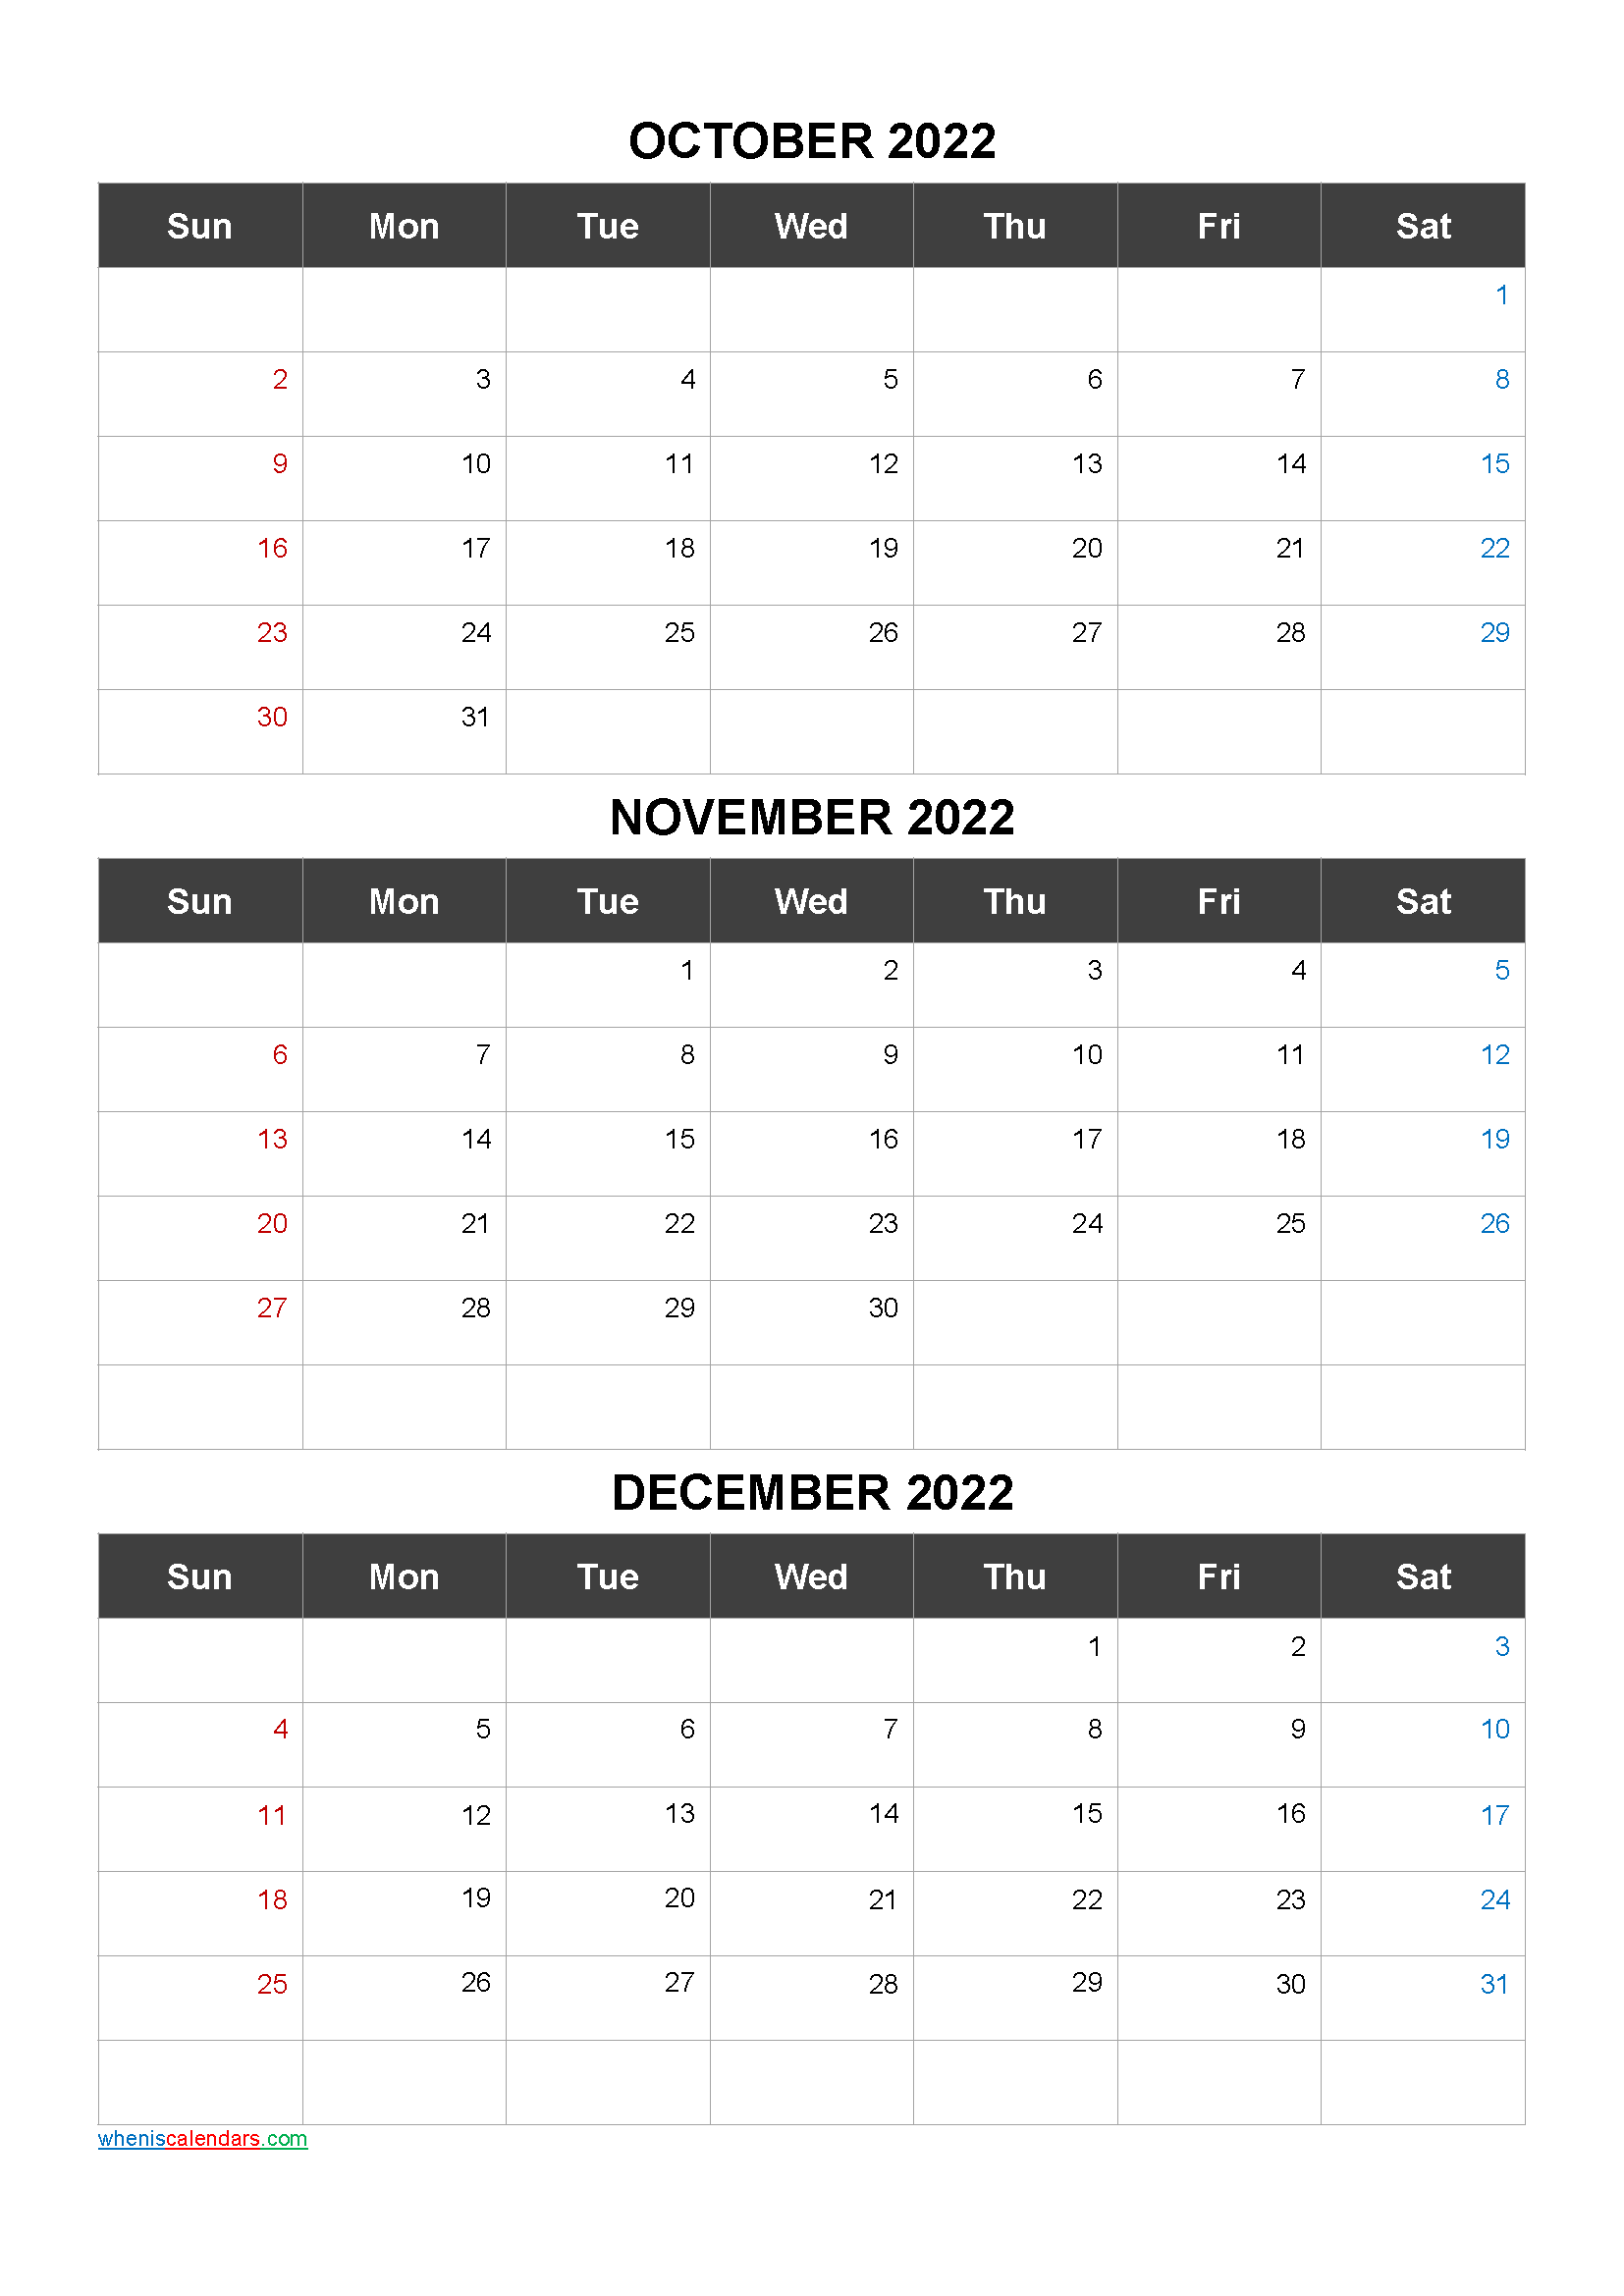 Free Printable 3 Month Calendar2022 October November December